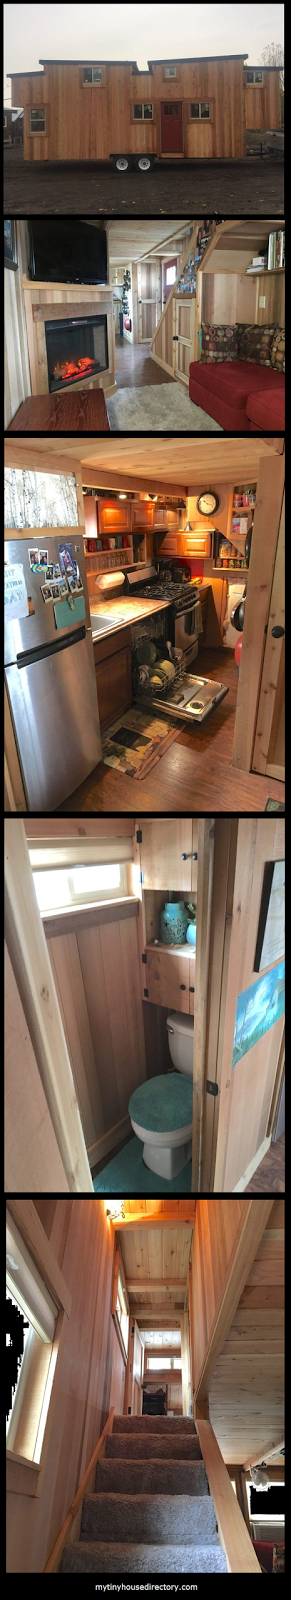 400 sq ft Tiny Home   Over 20 windows for lots of light   Batten and Board siding all cedar   Beautiful and spacious 3 bedroom, 1.5 bathr...